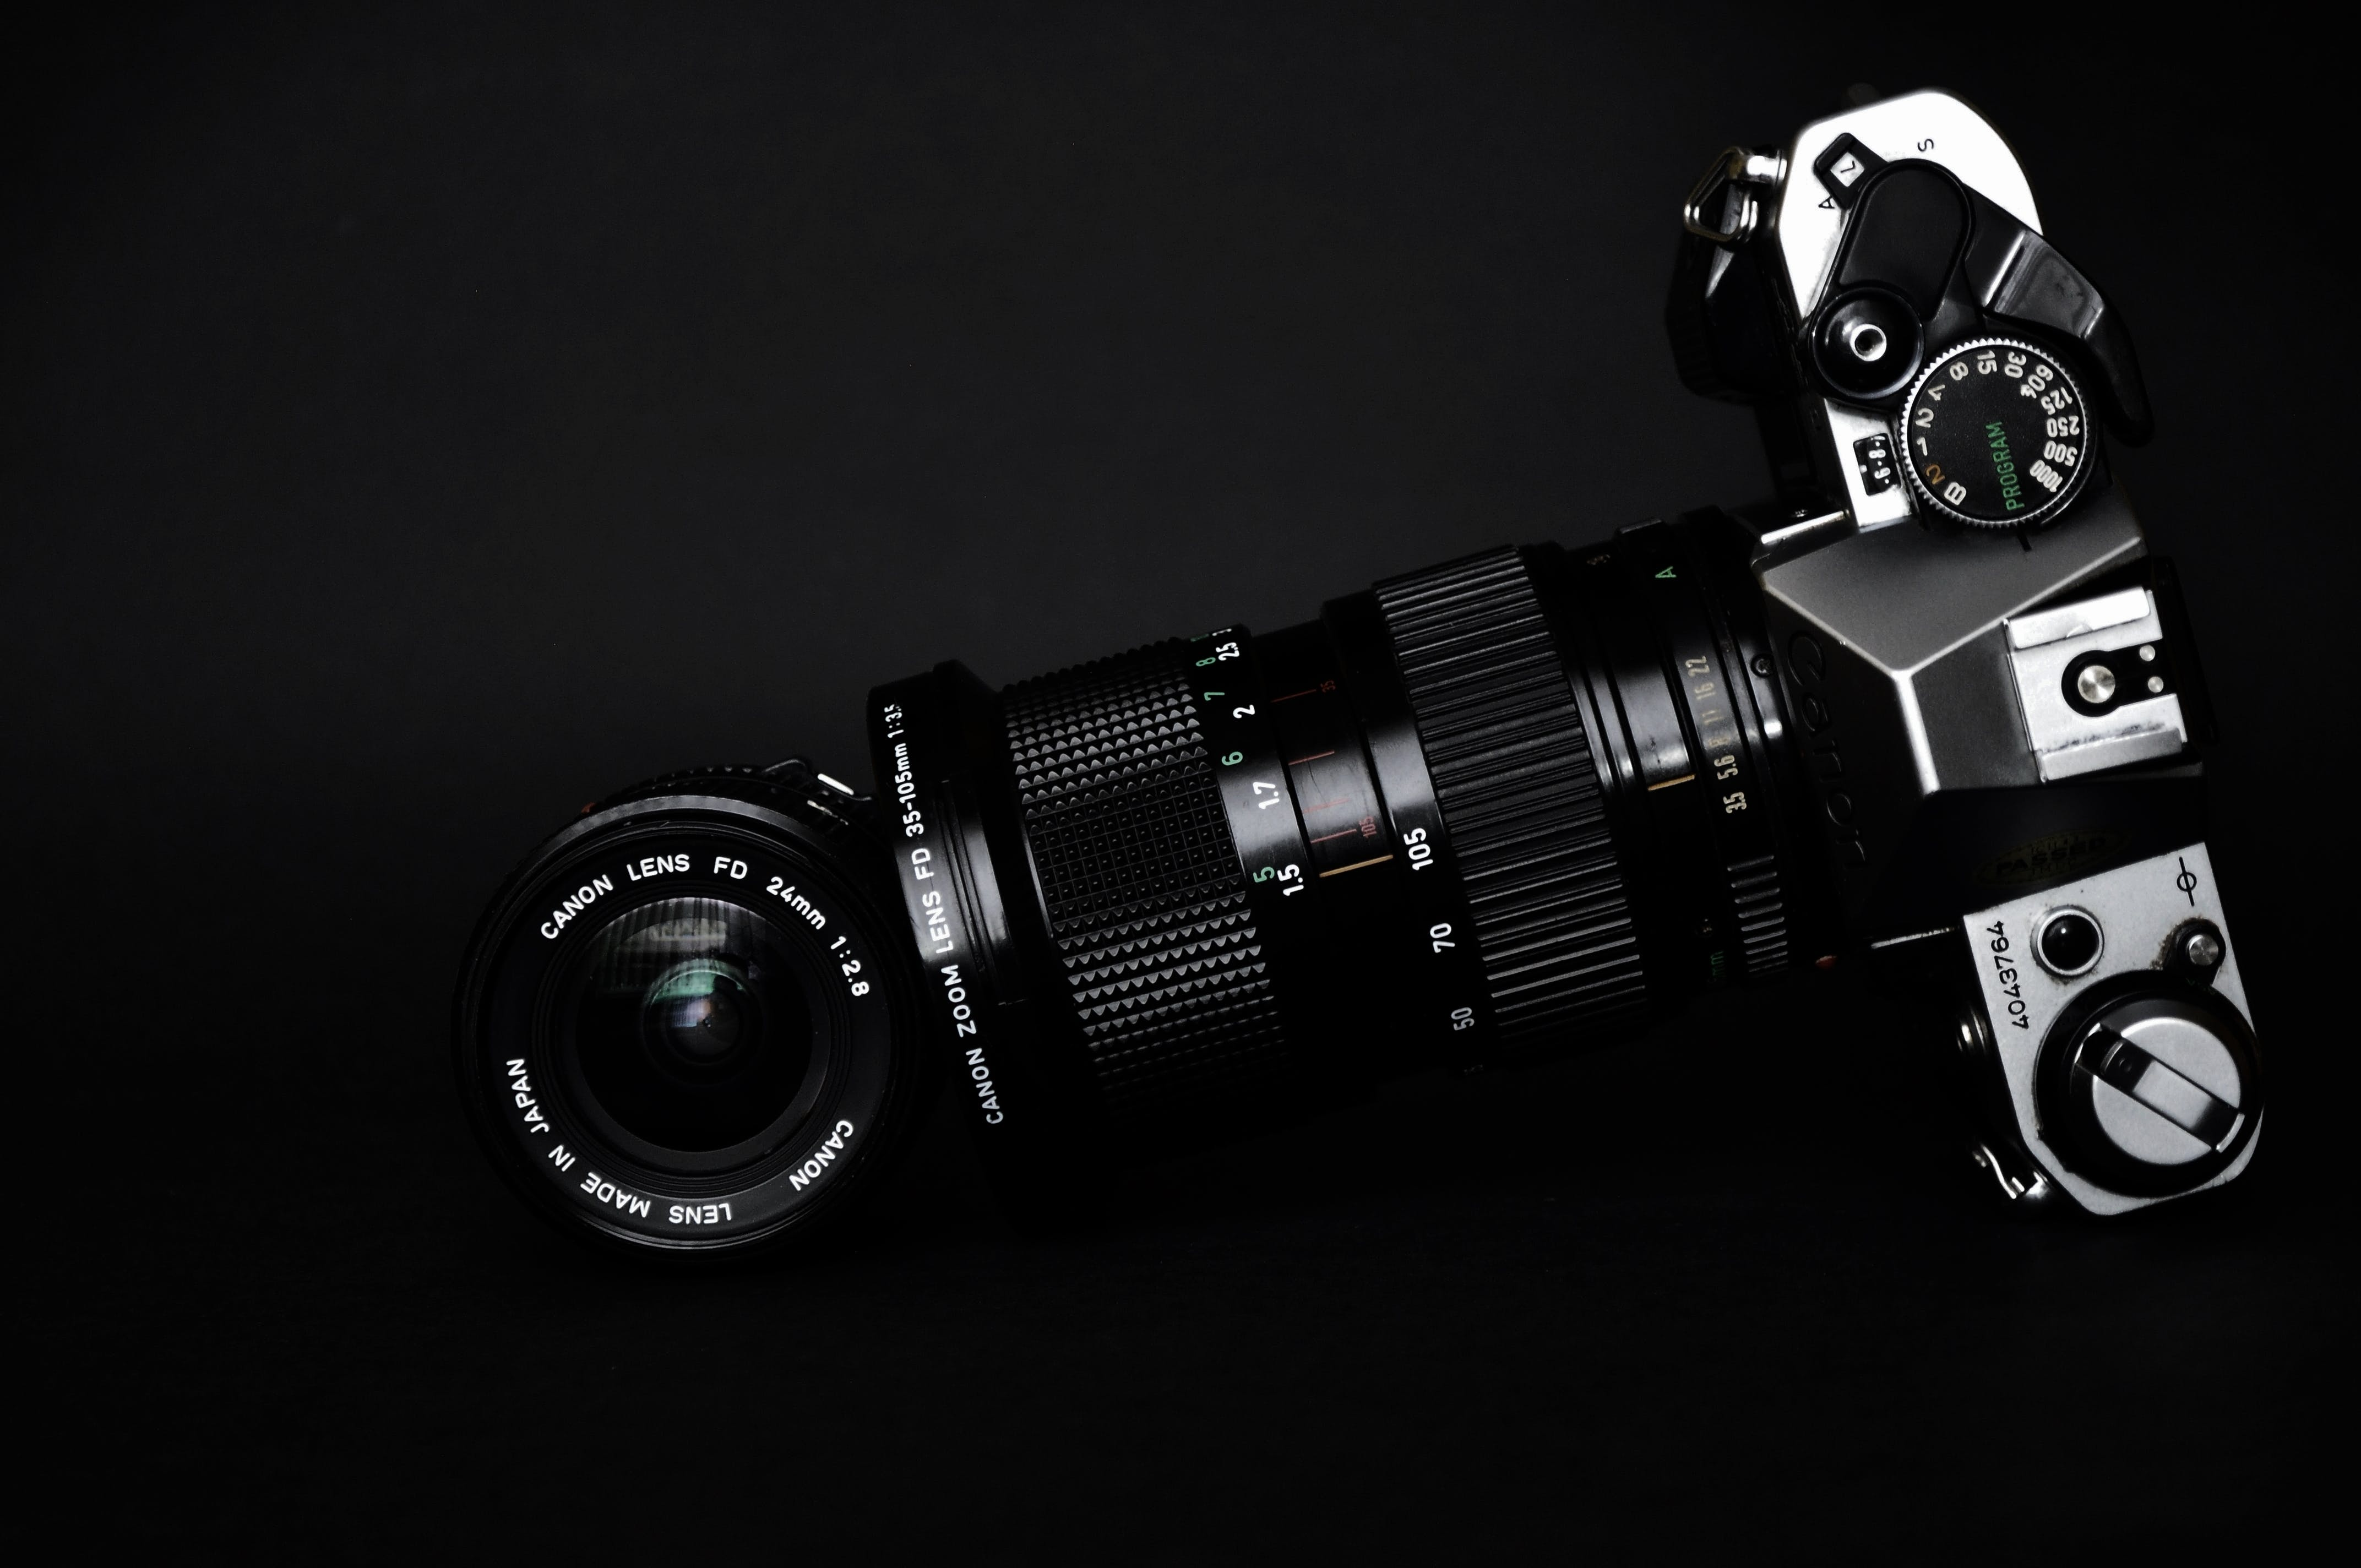 Black and Gray Slr Camera